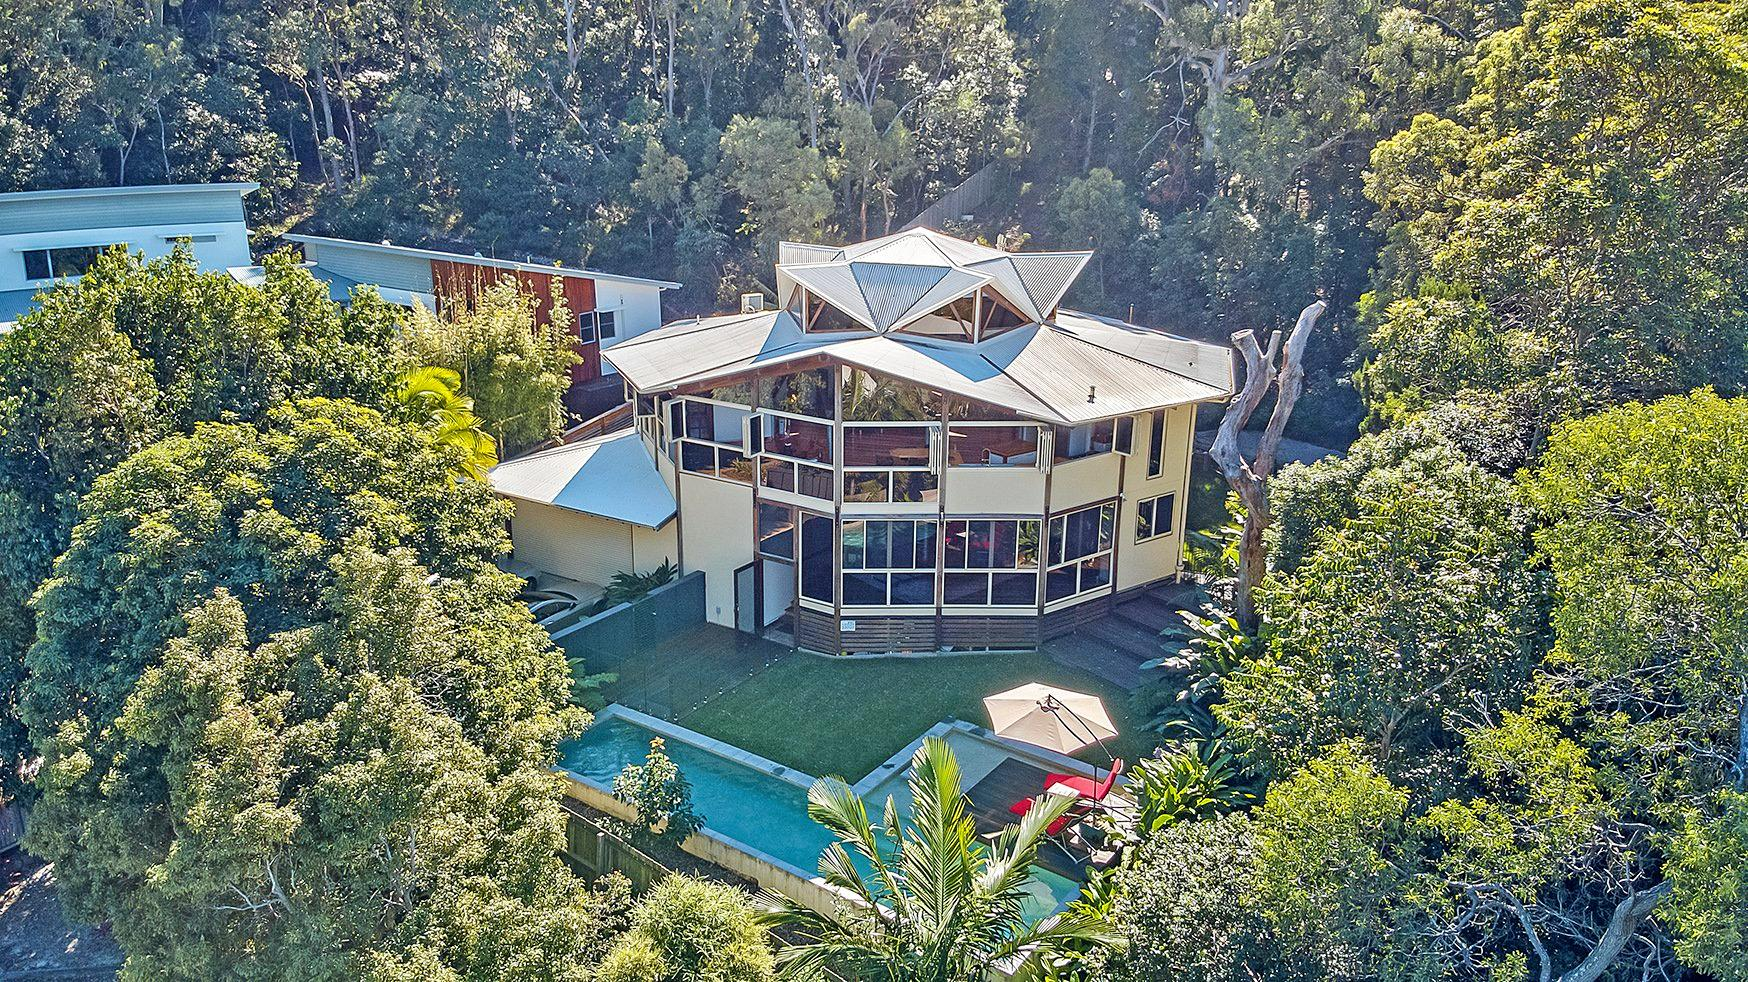 It features five bedrooms, a designer pool, timber deck and an enviable location.